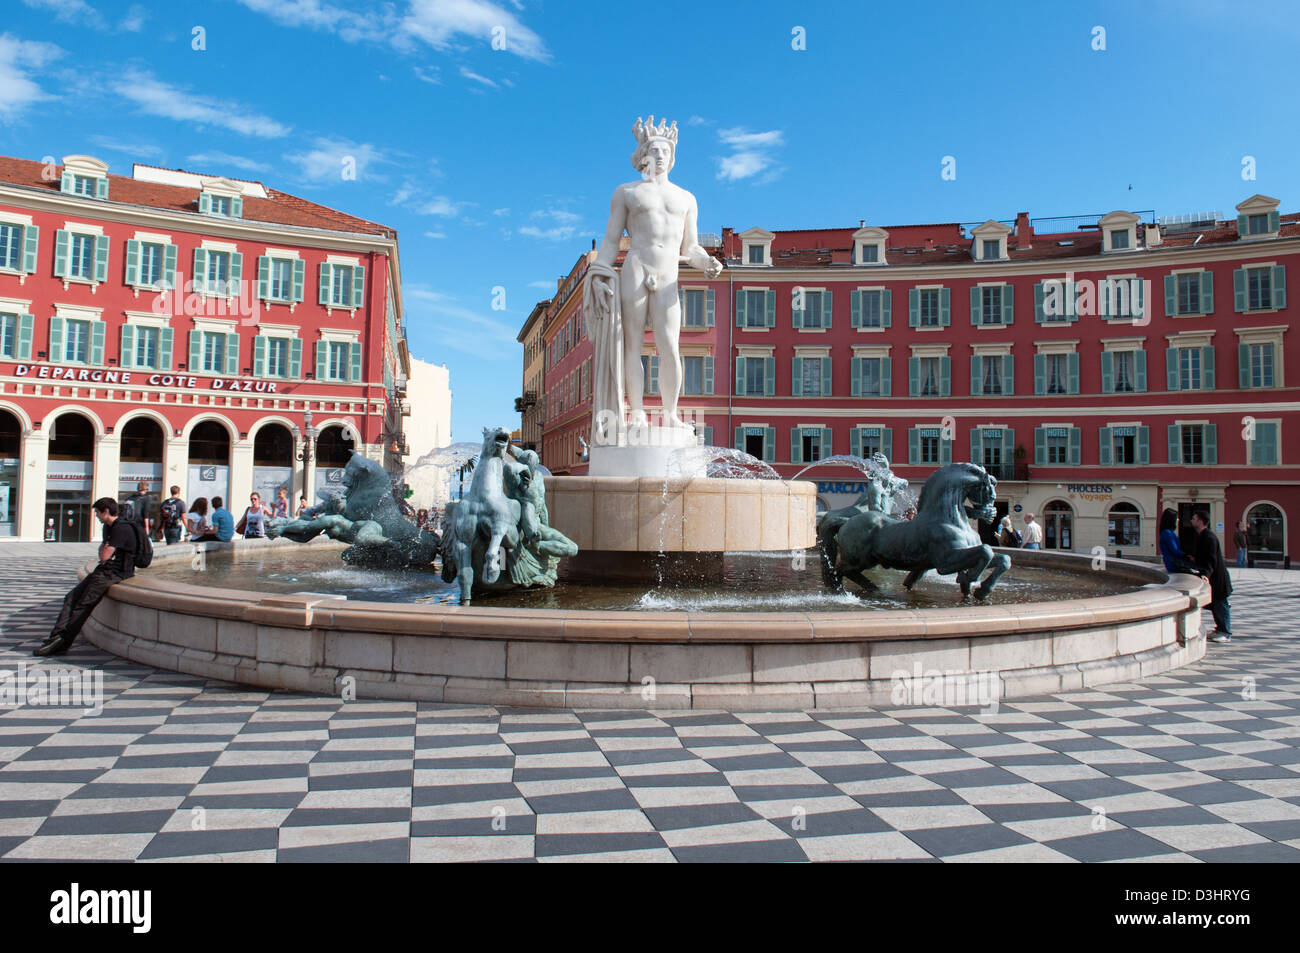 The Fountain of the sun, Massena square, city of Nice French Riviera France - Stock Image